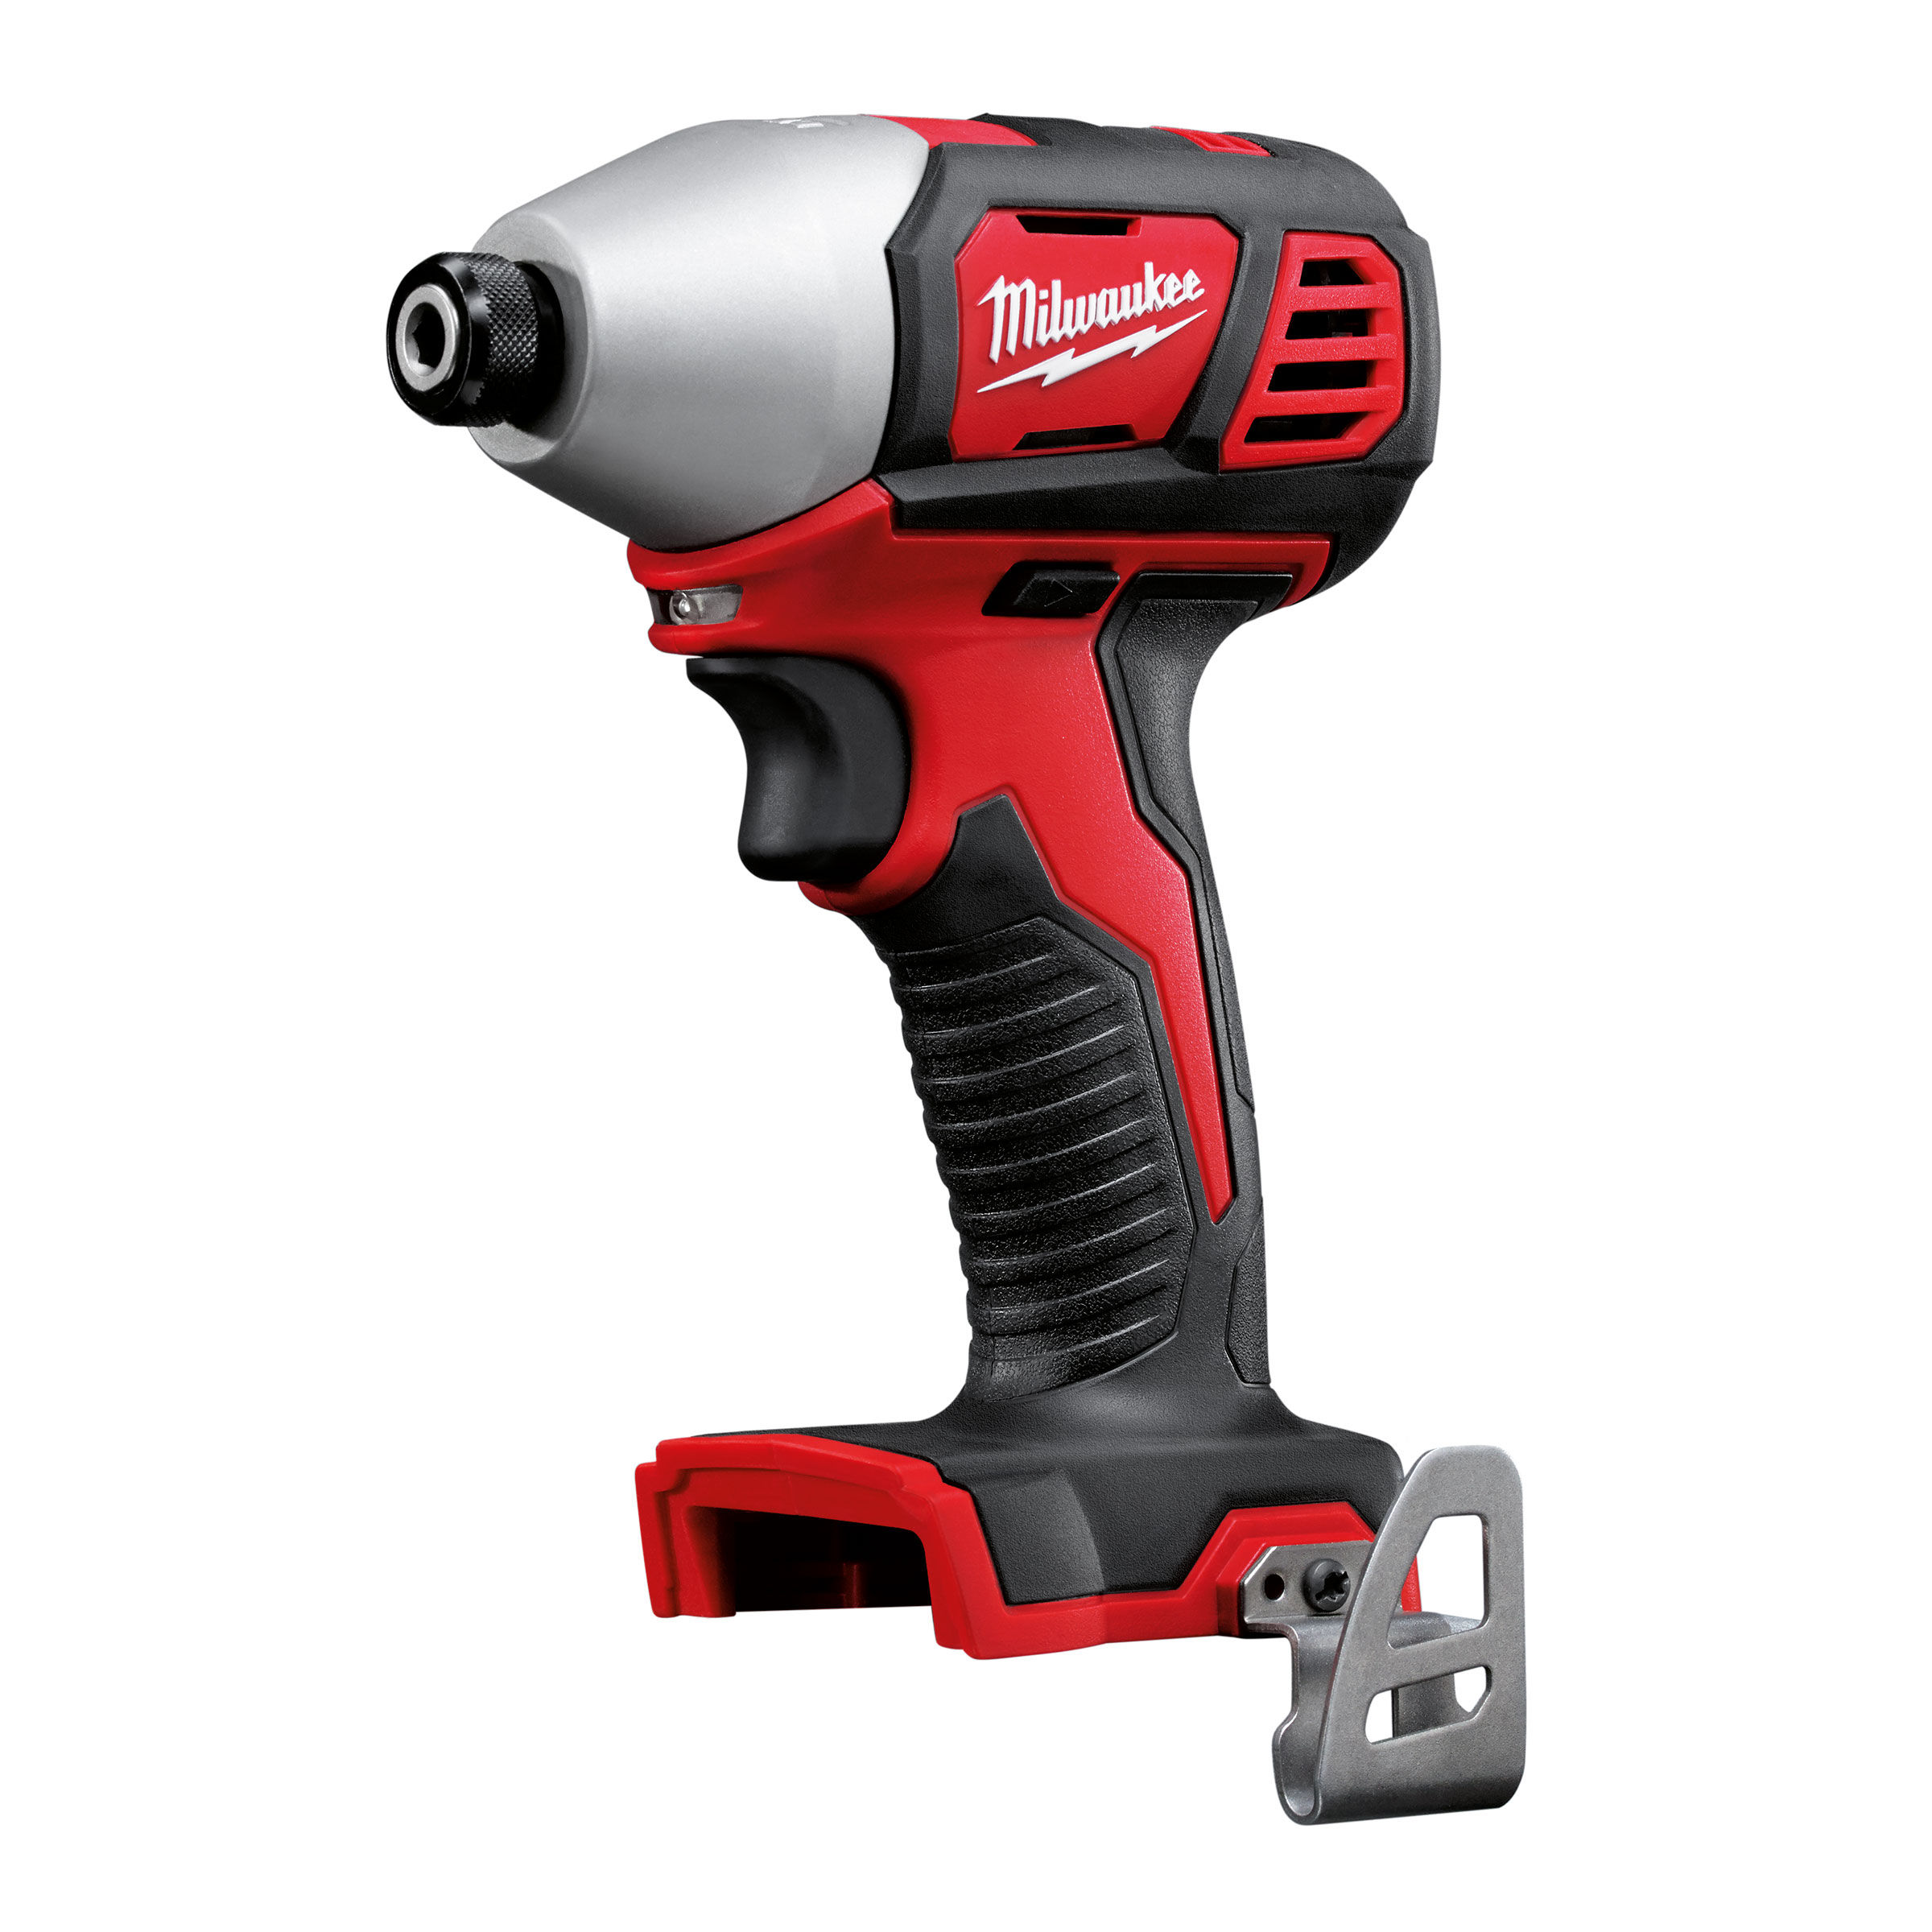 MILWAUKEE 18V BRUSHED IMPACT DRIVER - M18BID - BODY ONLY